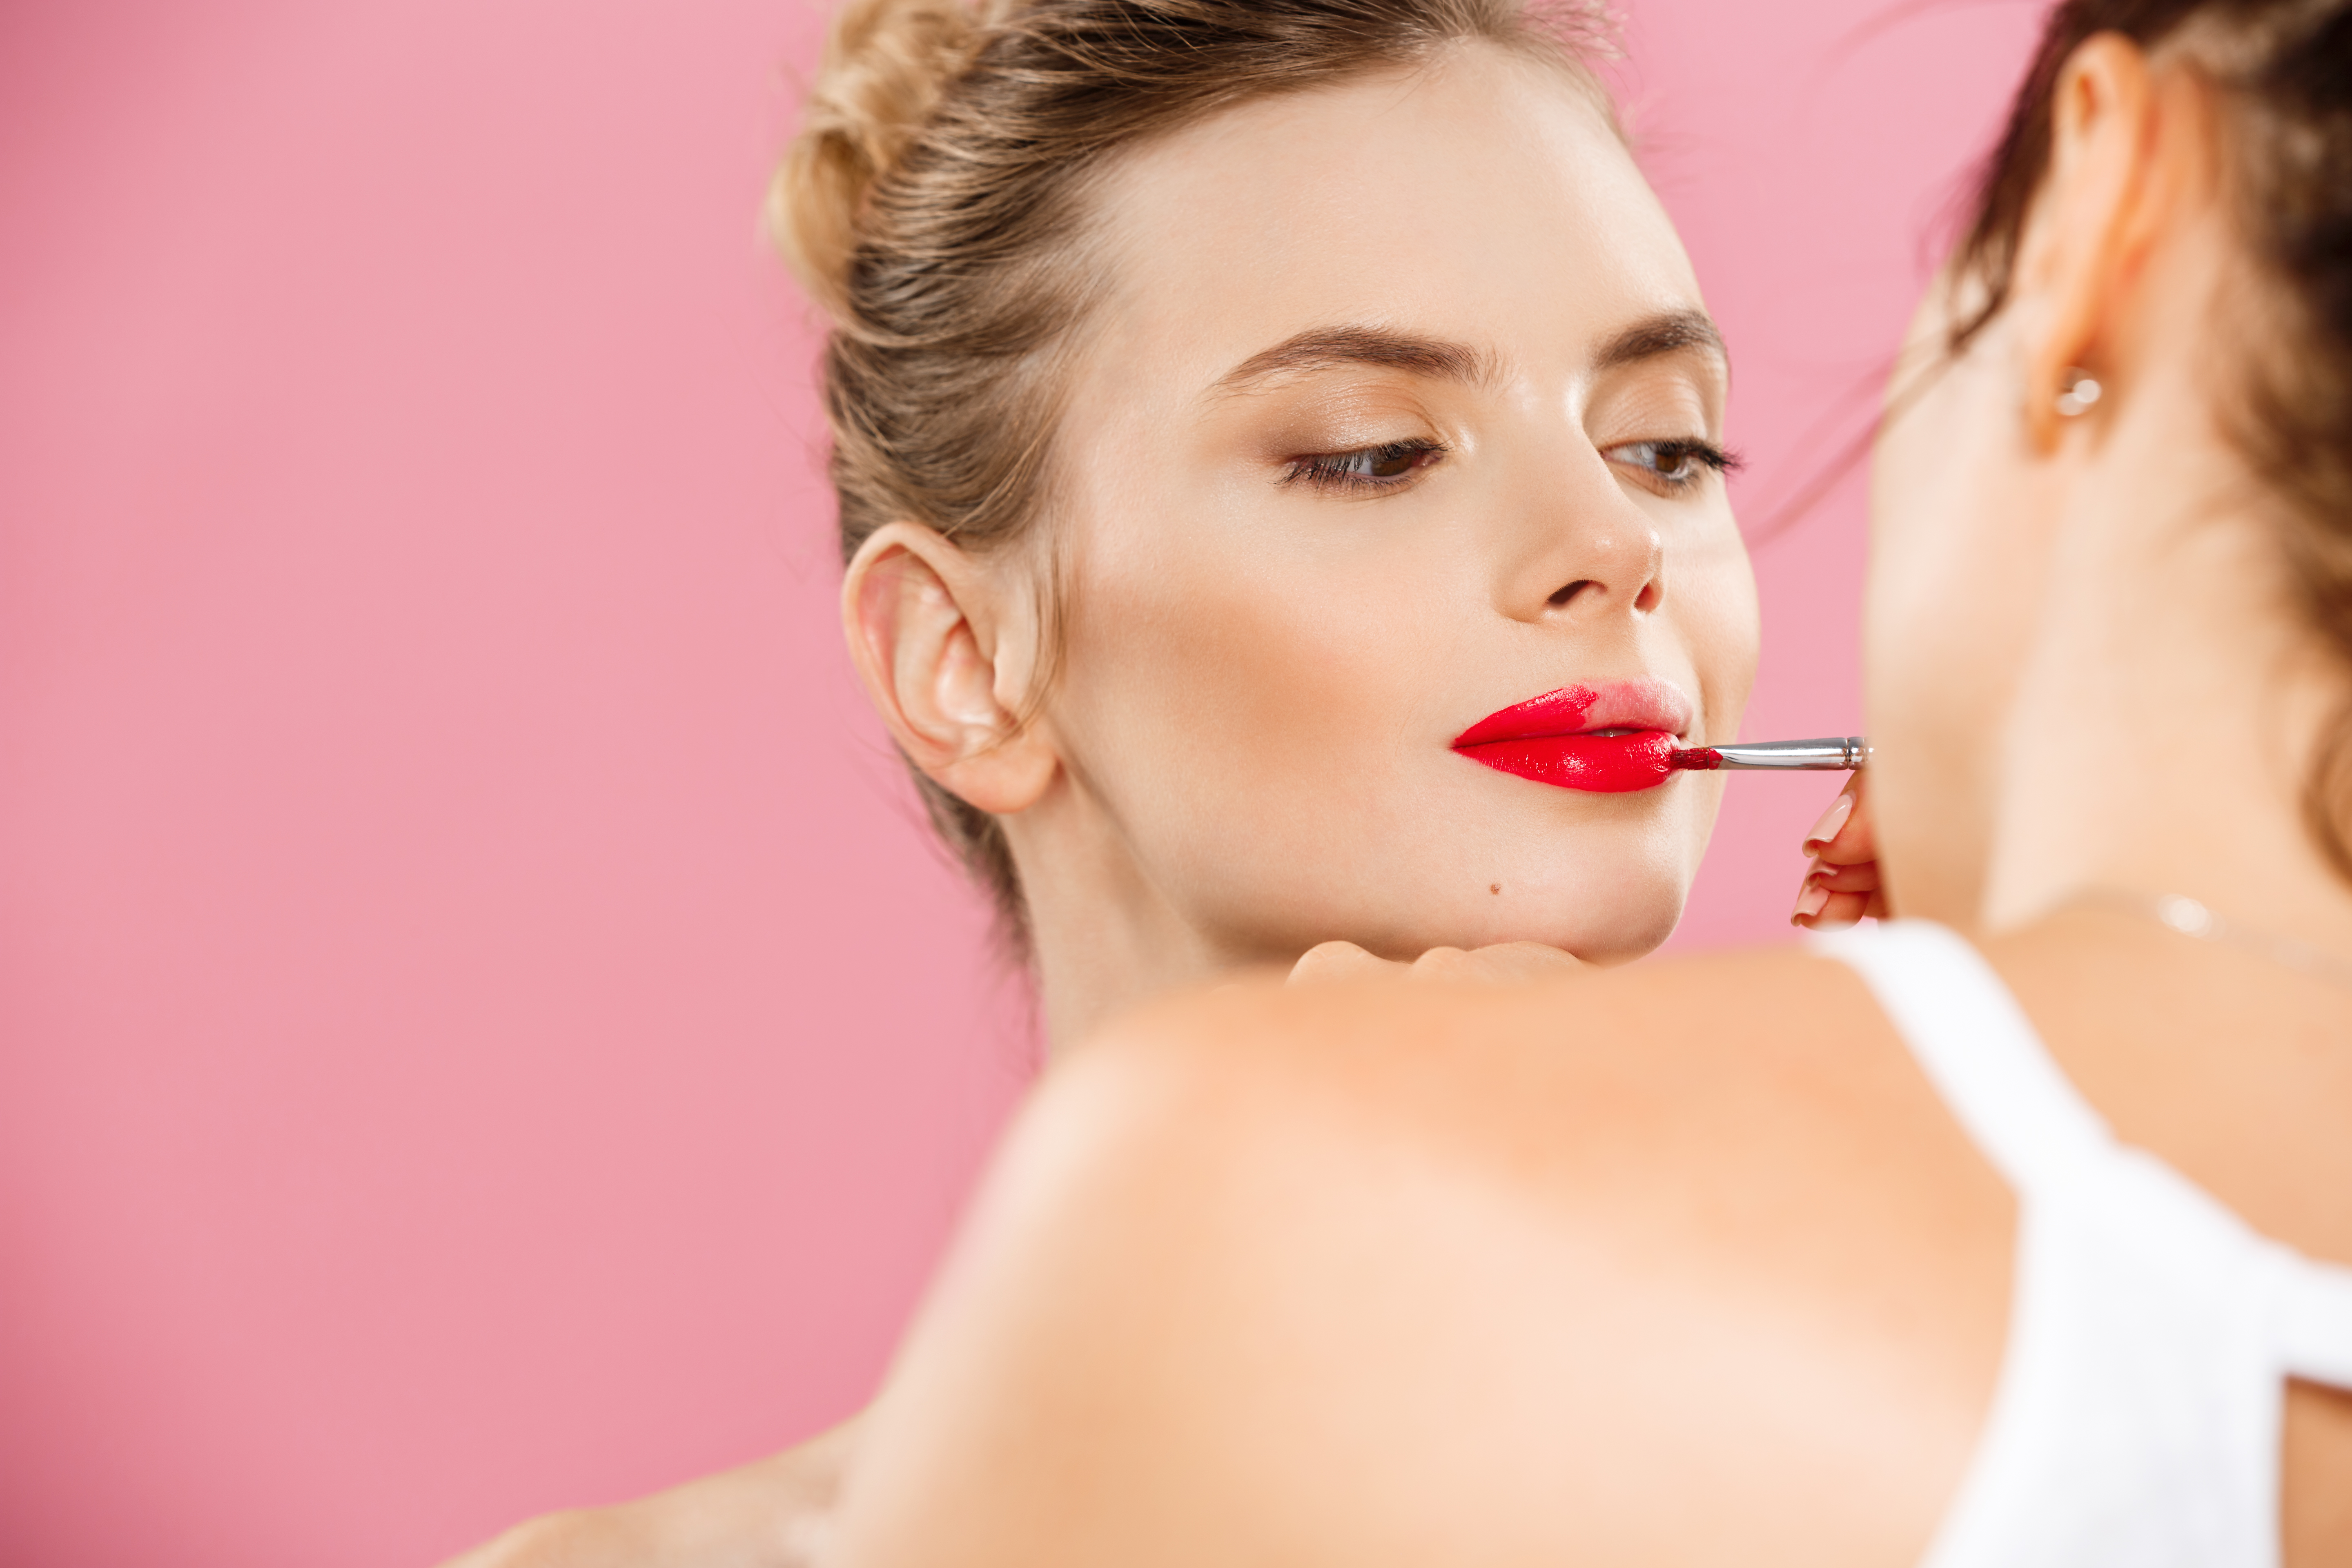 How to Become a Beautician?